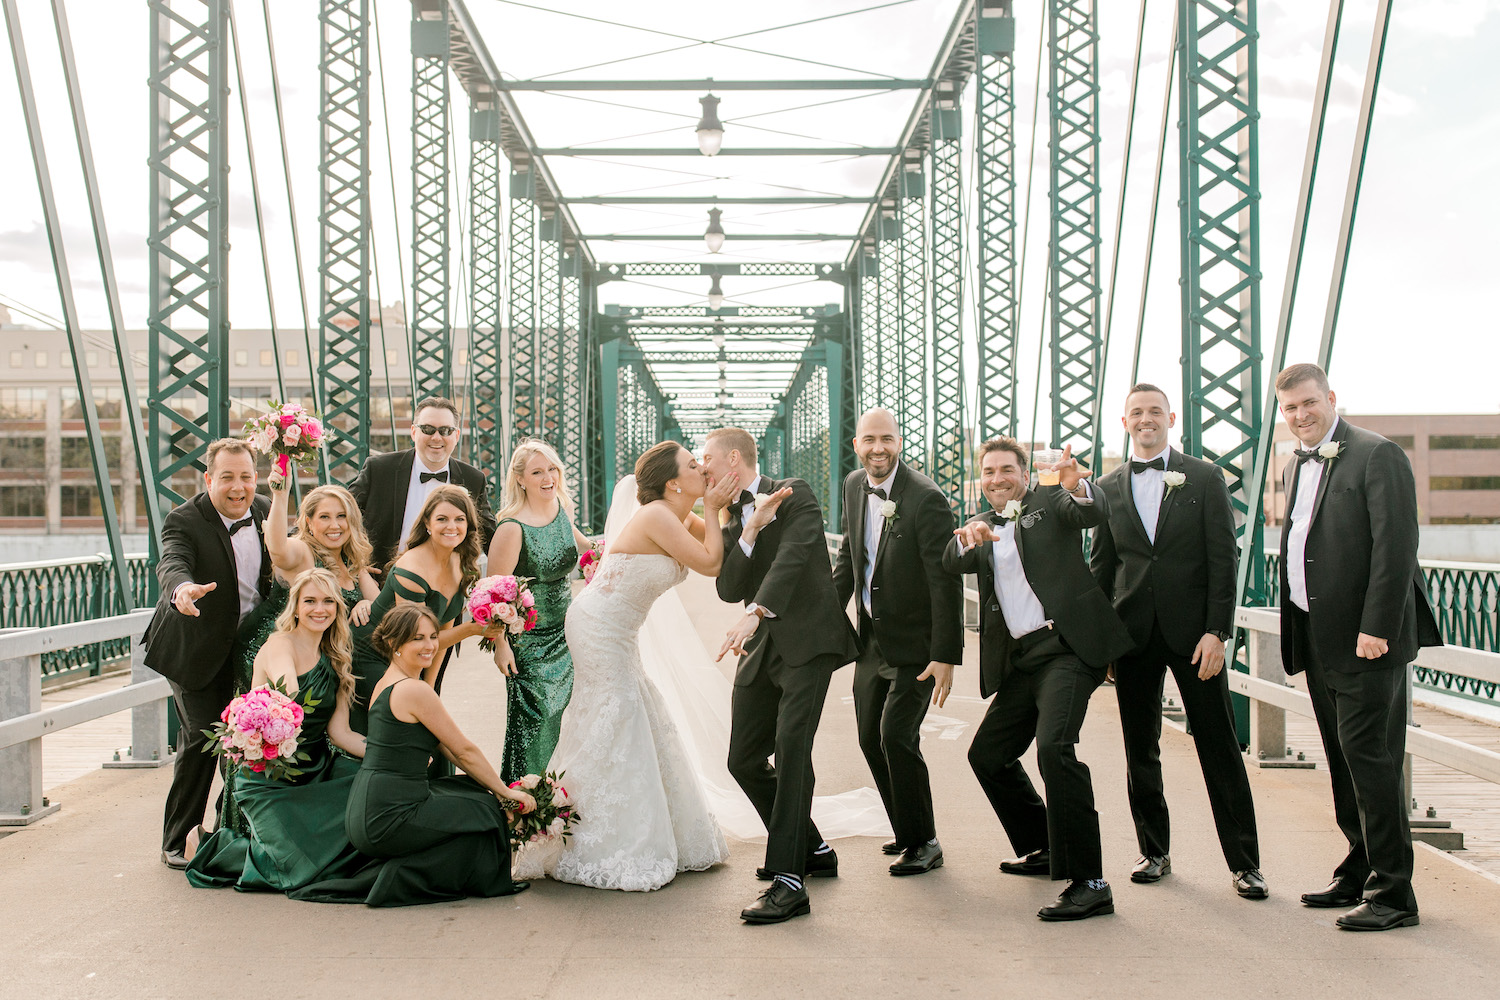 Bridal party celebrating bride and groom kissing